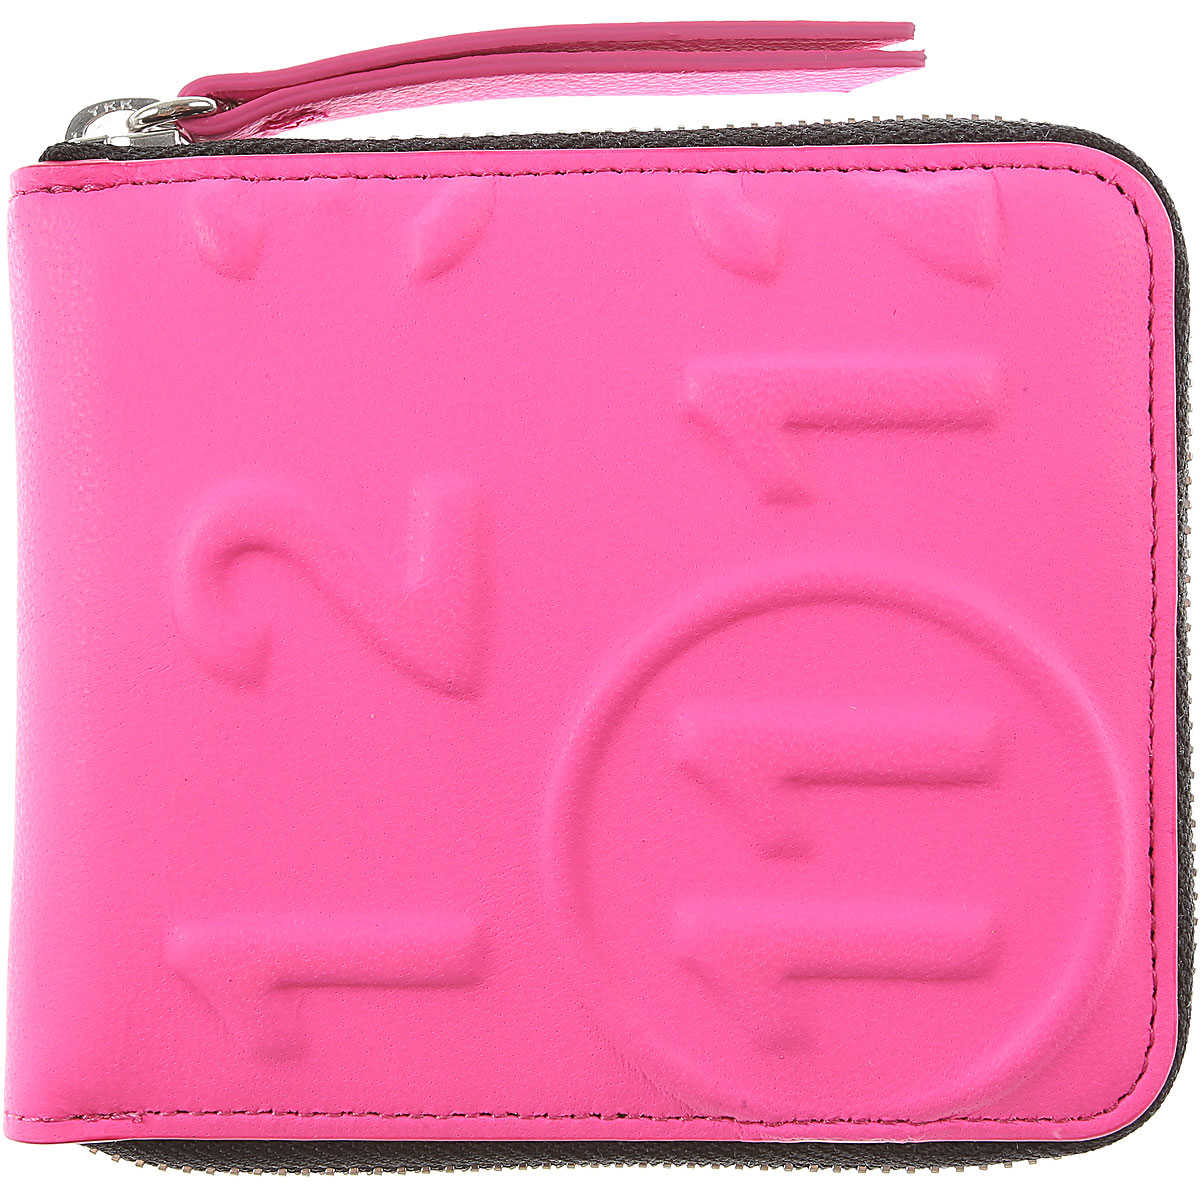 Maison Martin Margiela Wallet for Men Fuchsia USA - GOOFASH